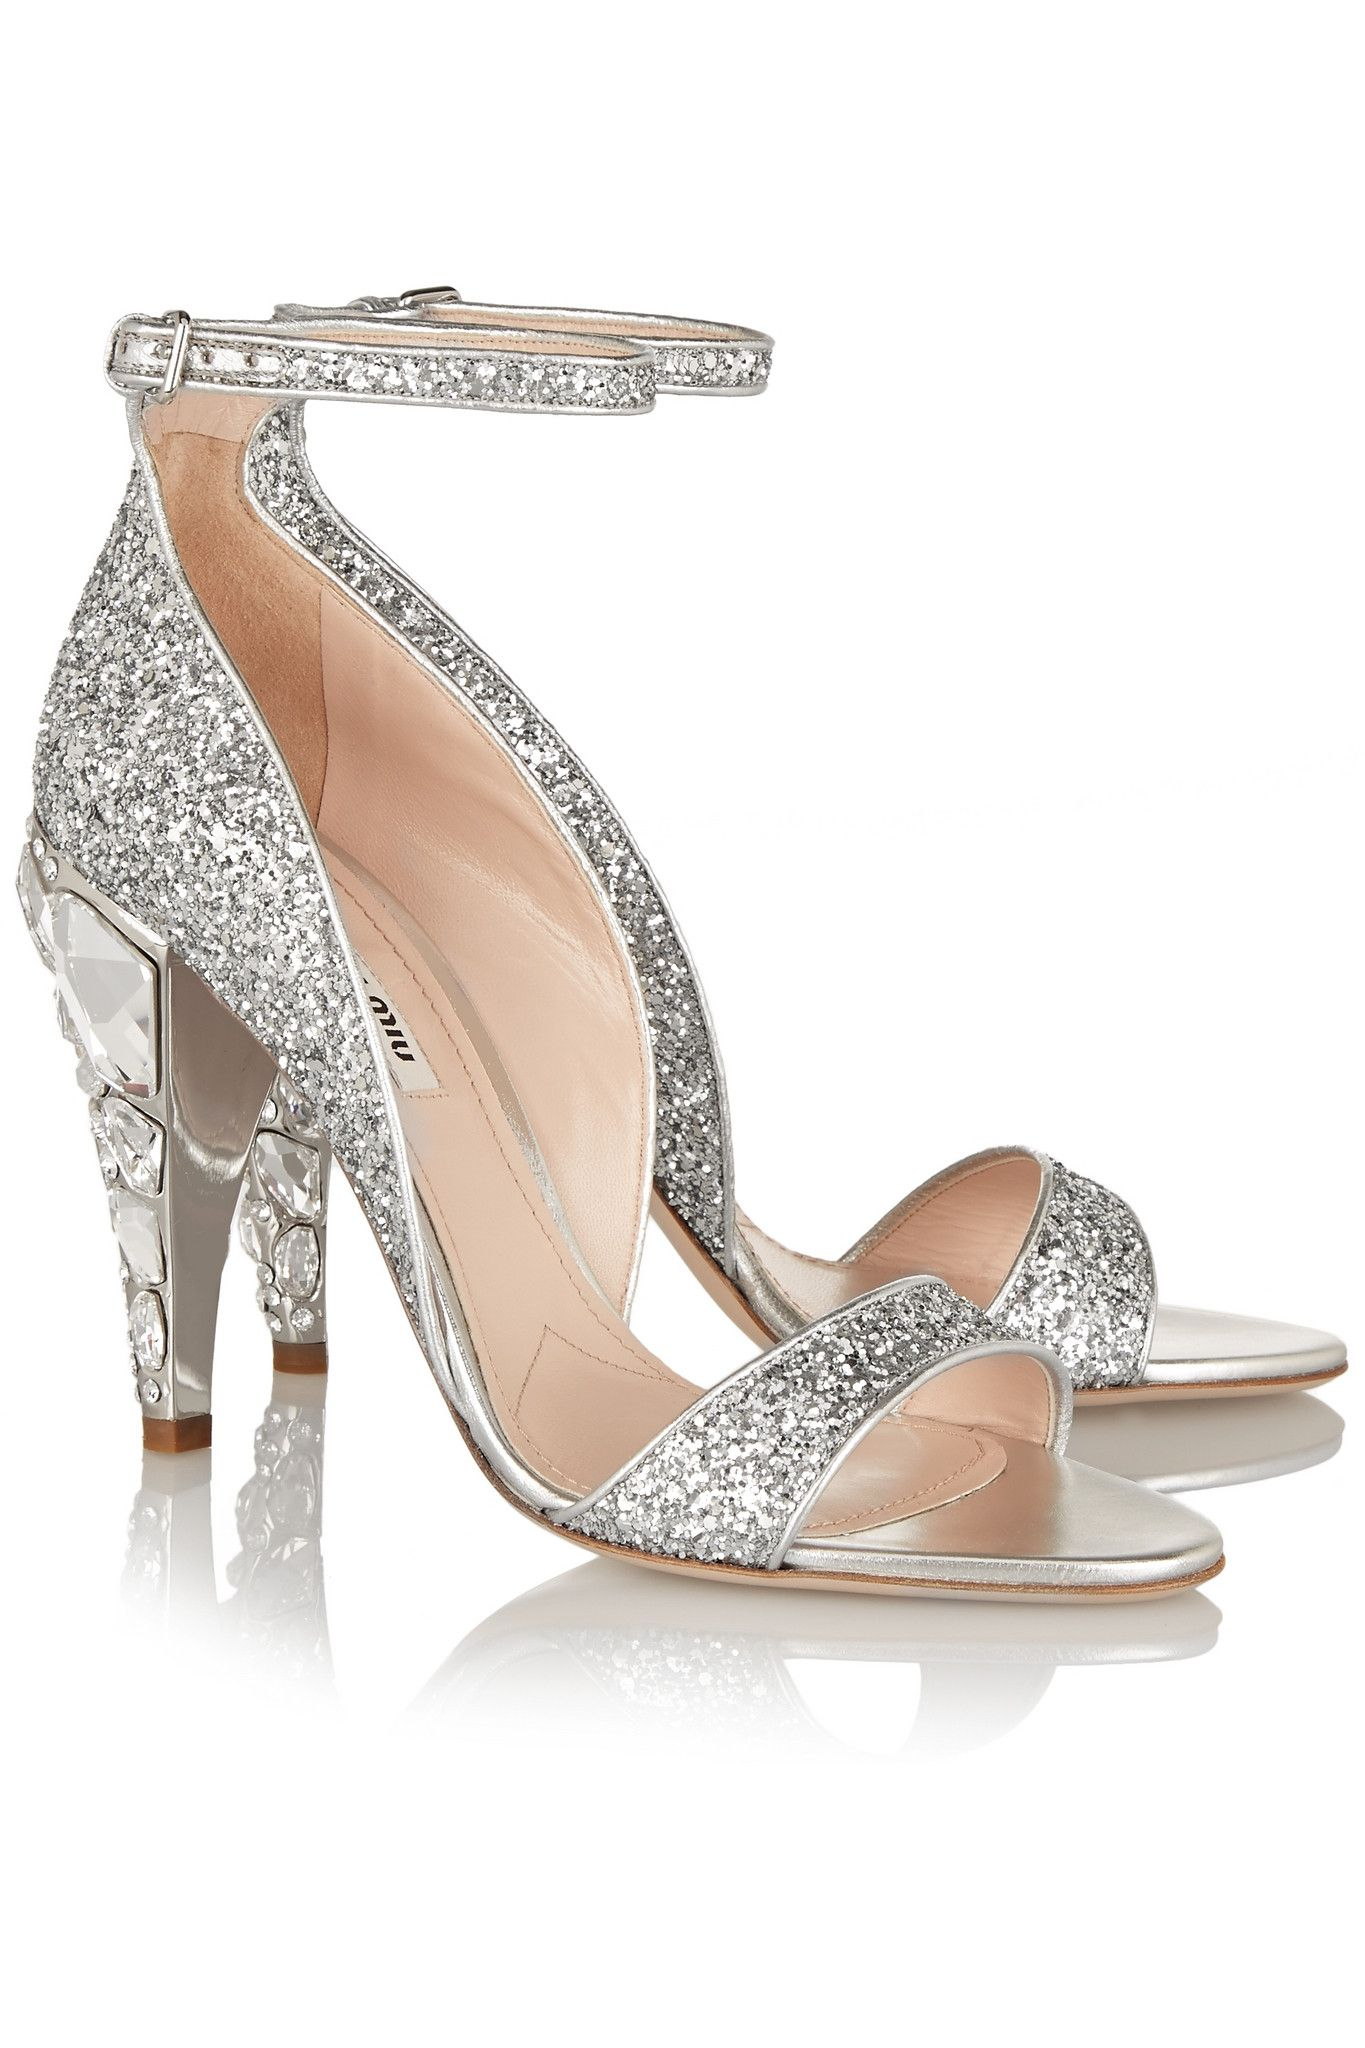 5df24576c378 miu-miu-silver-swarovski-crystal-embellished-glittered-leather ...